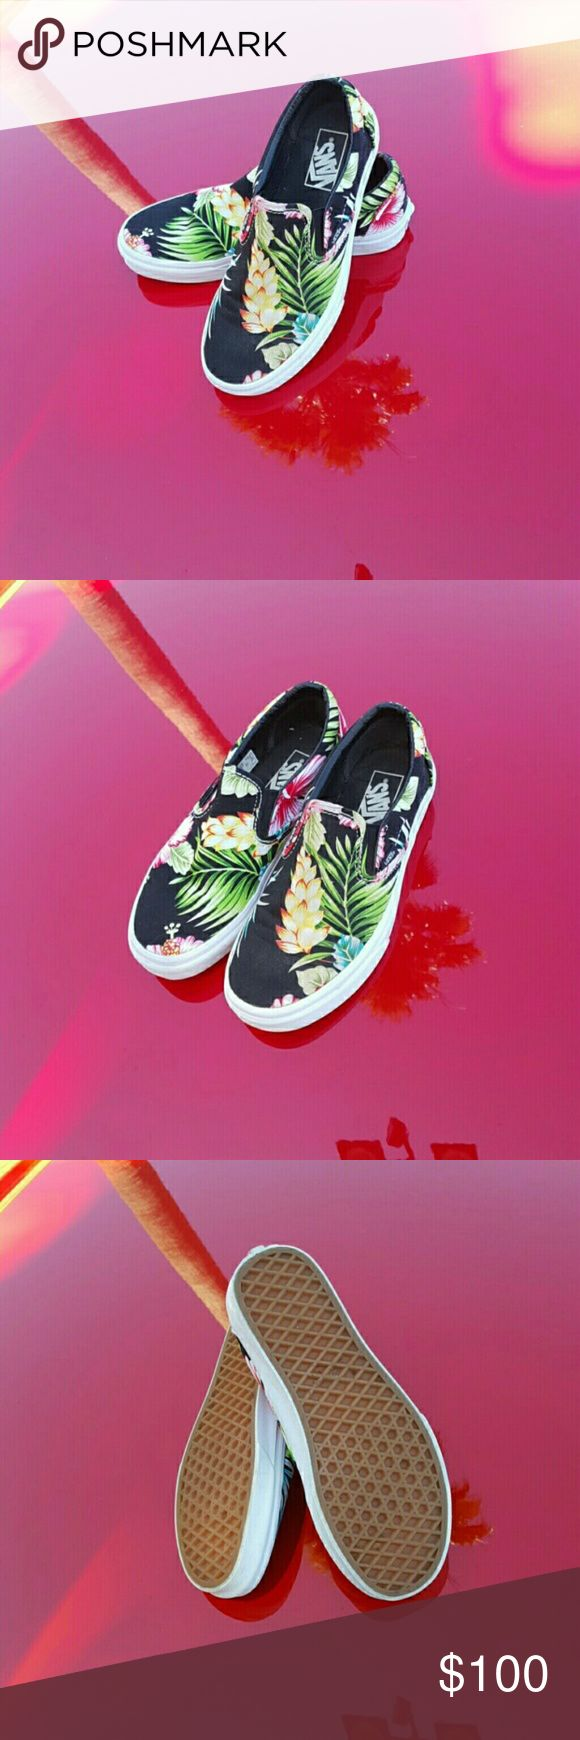 Tropical Vans Slip-On Shoes  Women's size 7.5, Men's size 6 Brand new condition! Black background with bright tropical pattern. Scarlett Johansson wore these!!! (Only twice though before giving them to me) Vans Shoes Sneakers